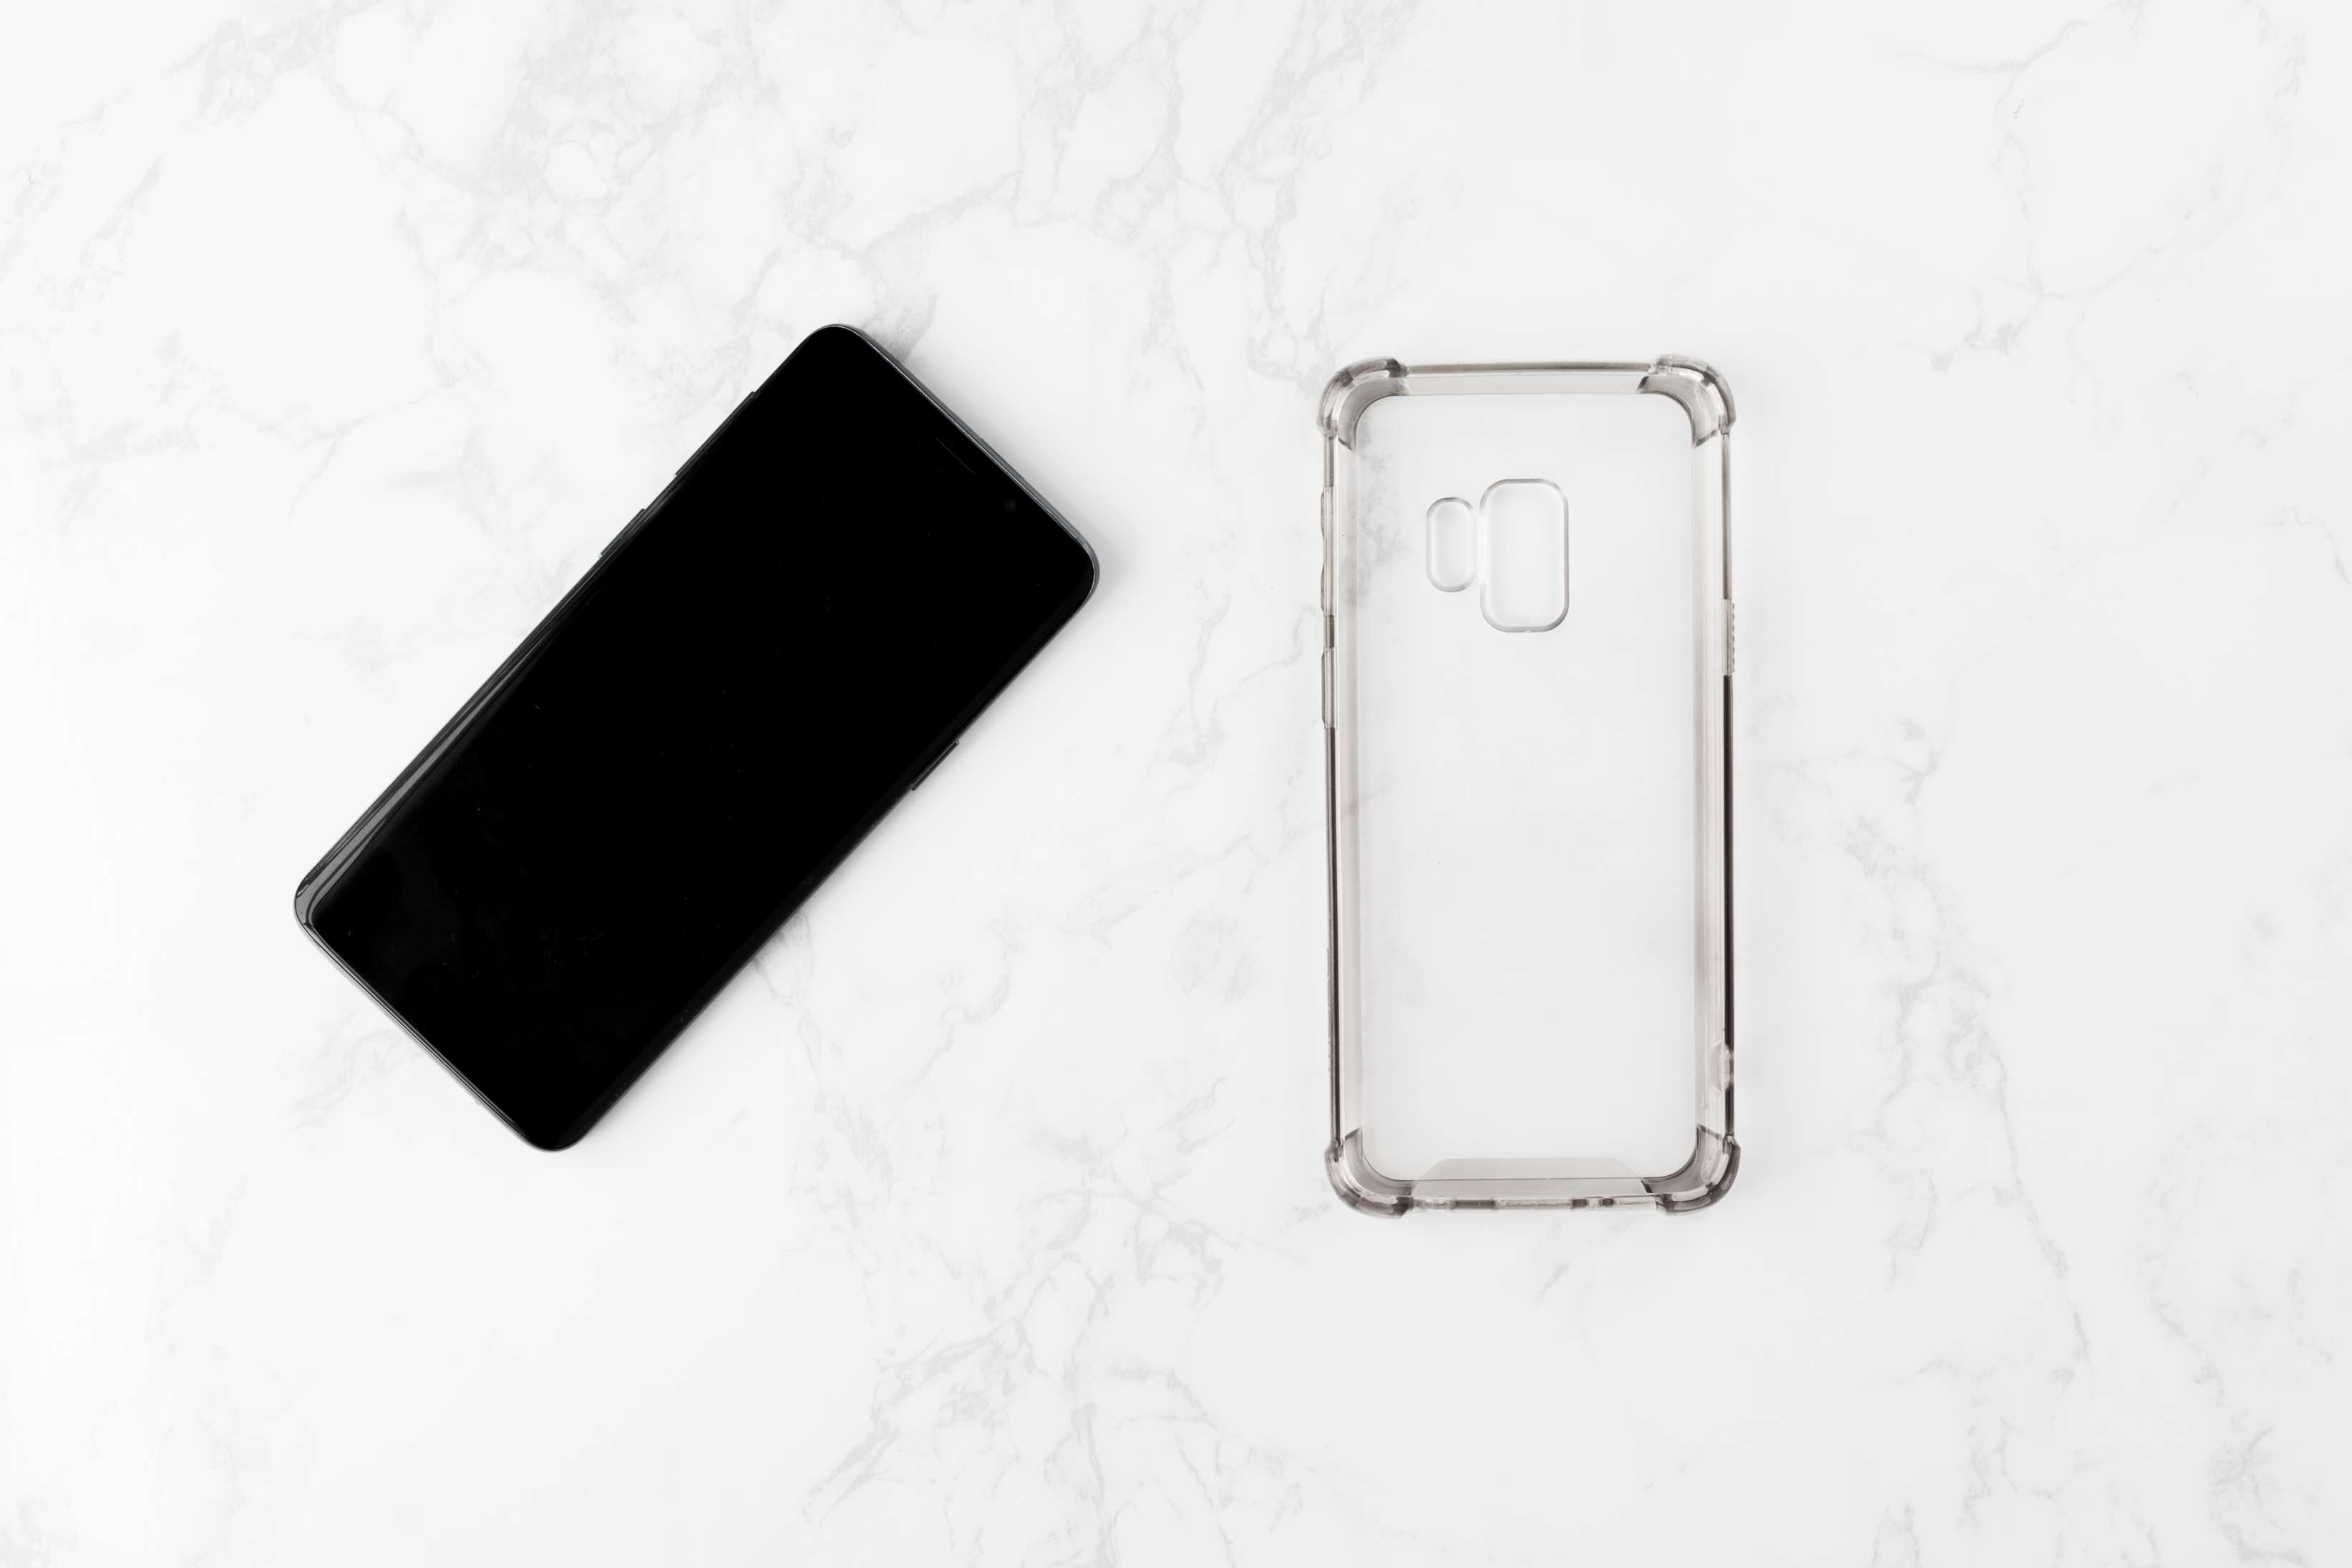 remove the cover prior to cleaning your cell phone